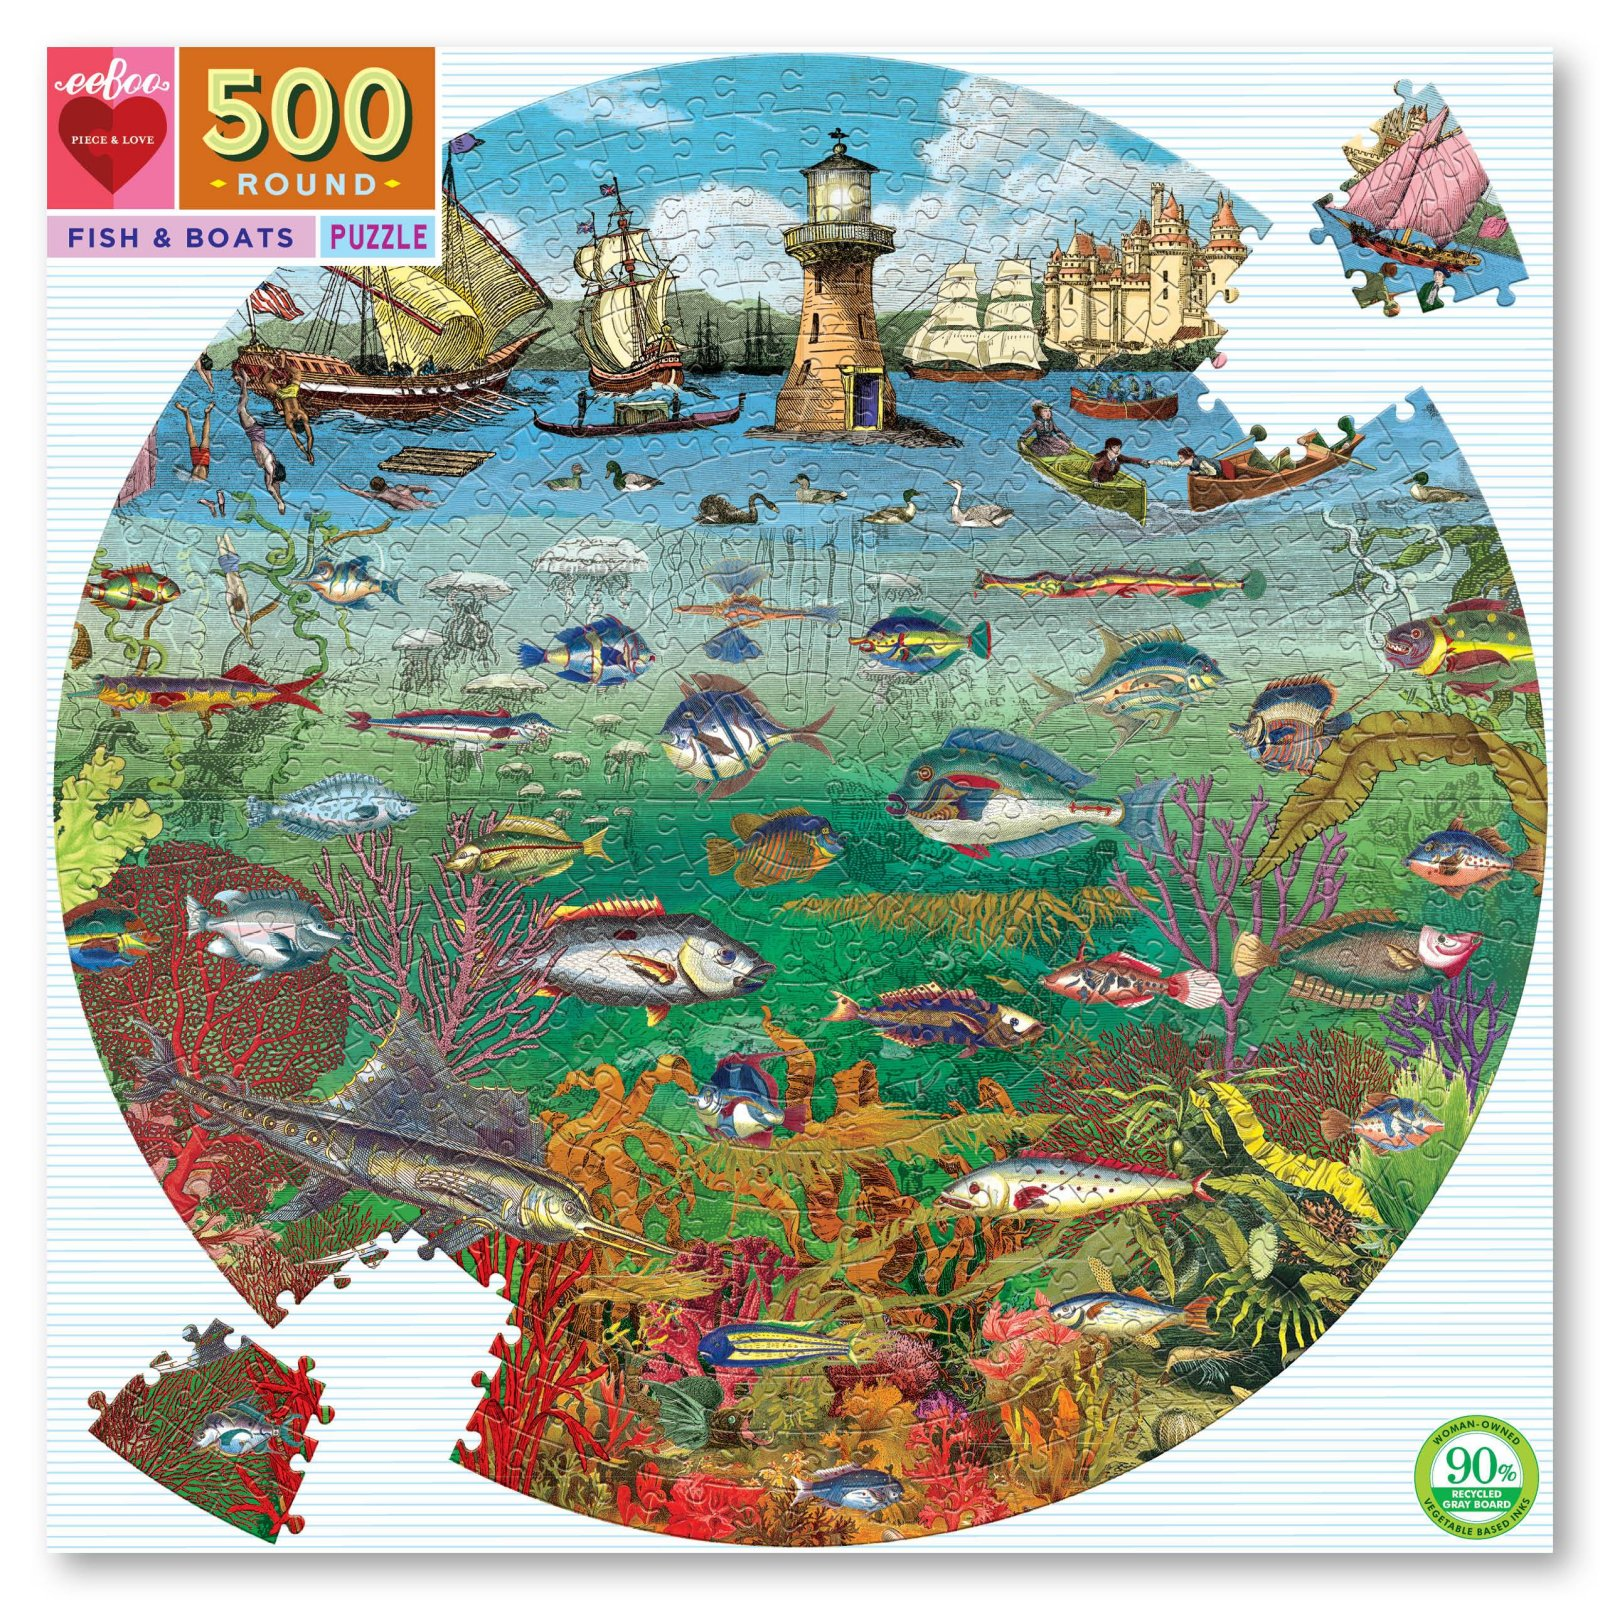 Fish and Boats 500 Piece Puzzle by Eeboo